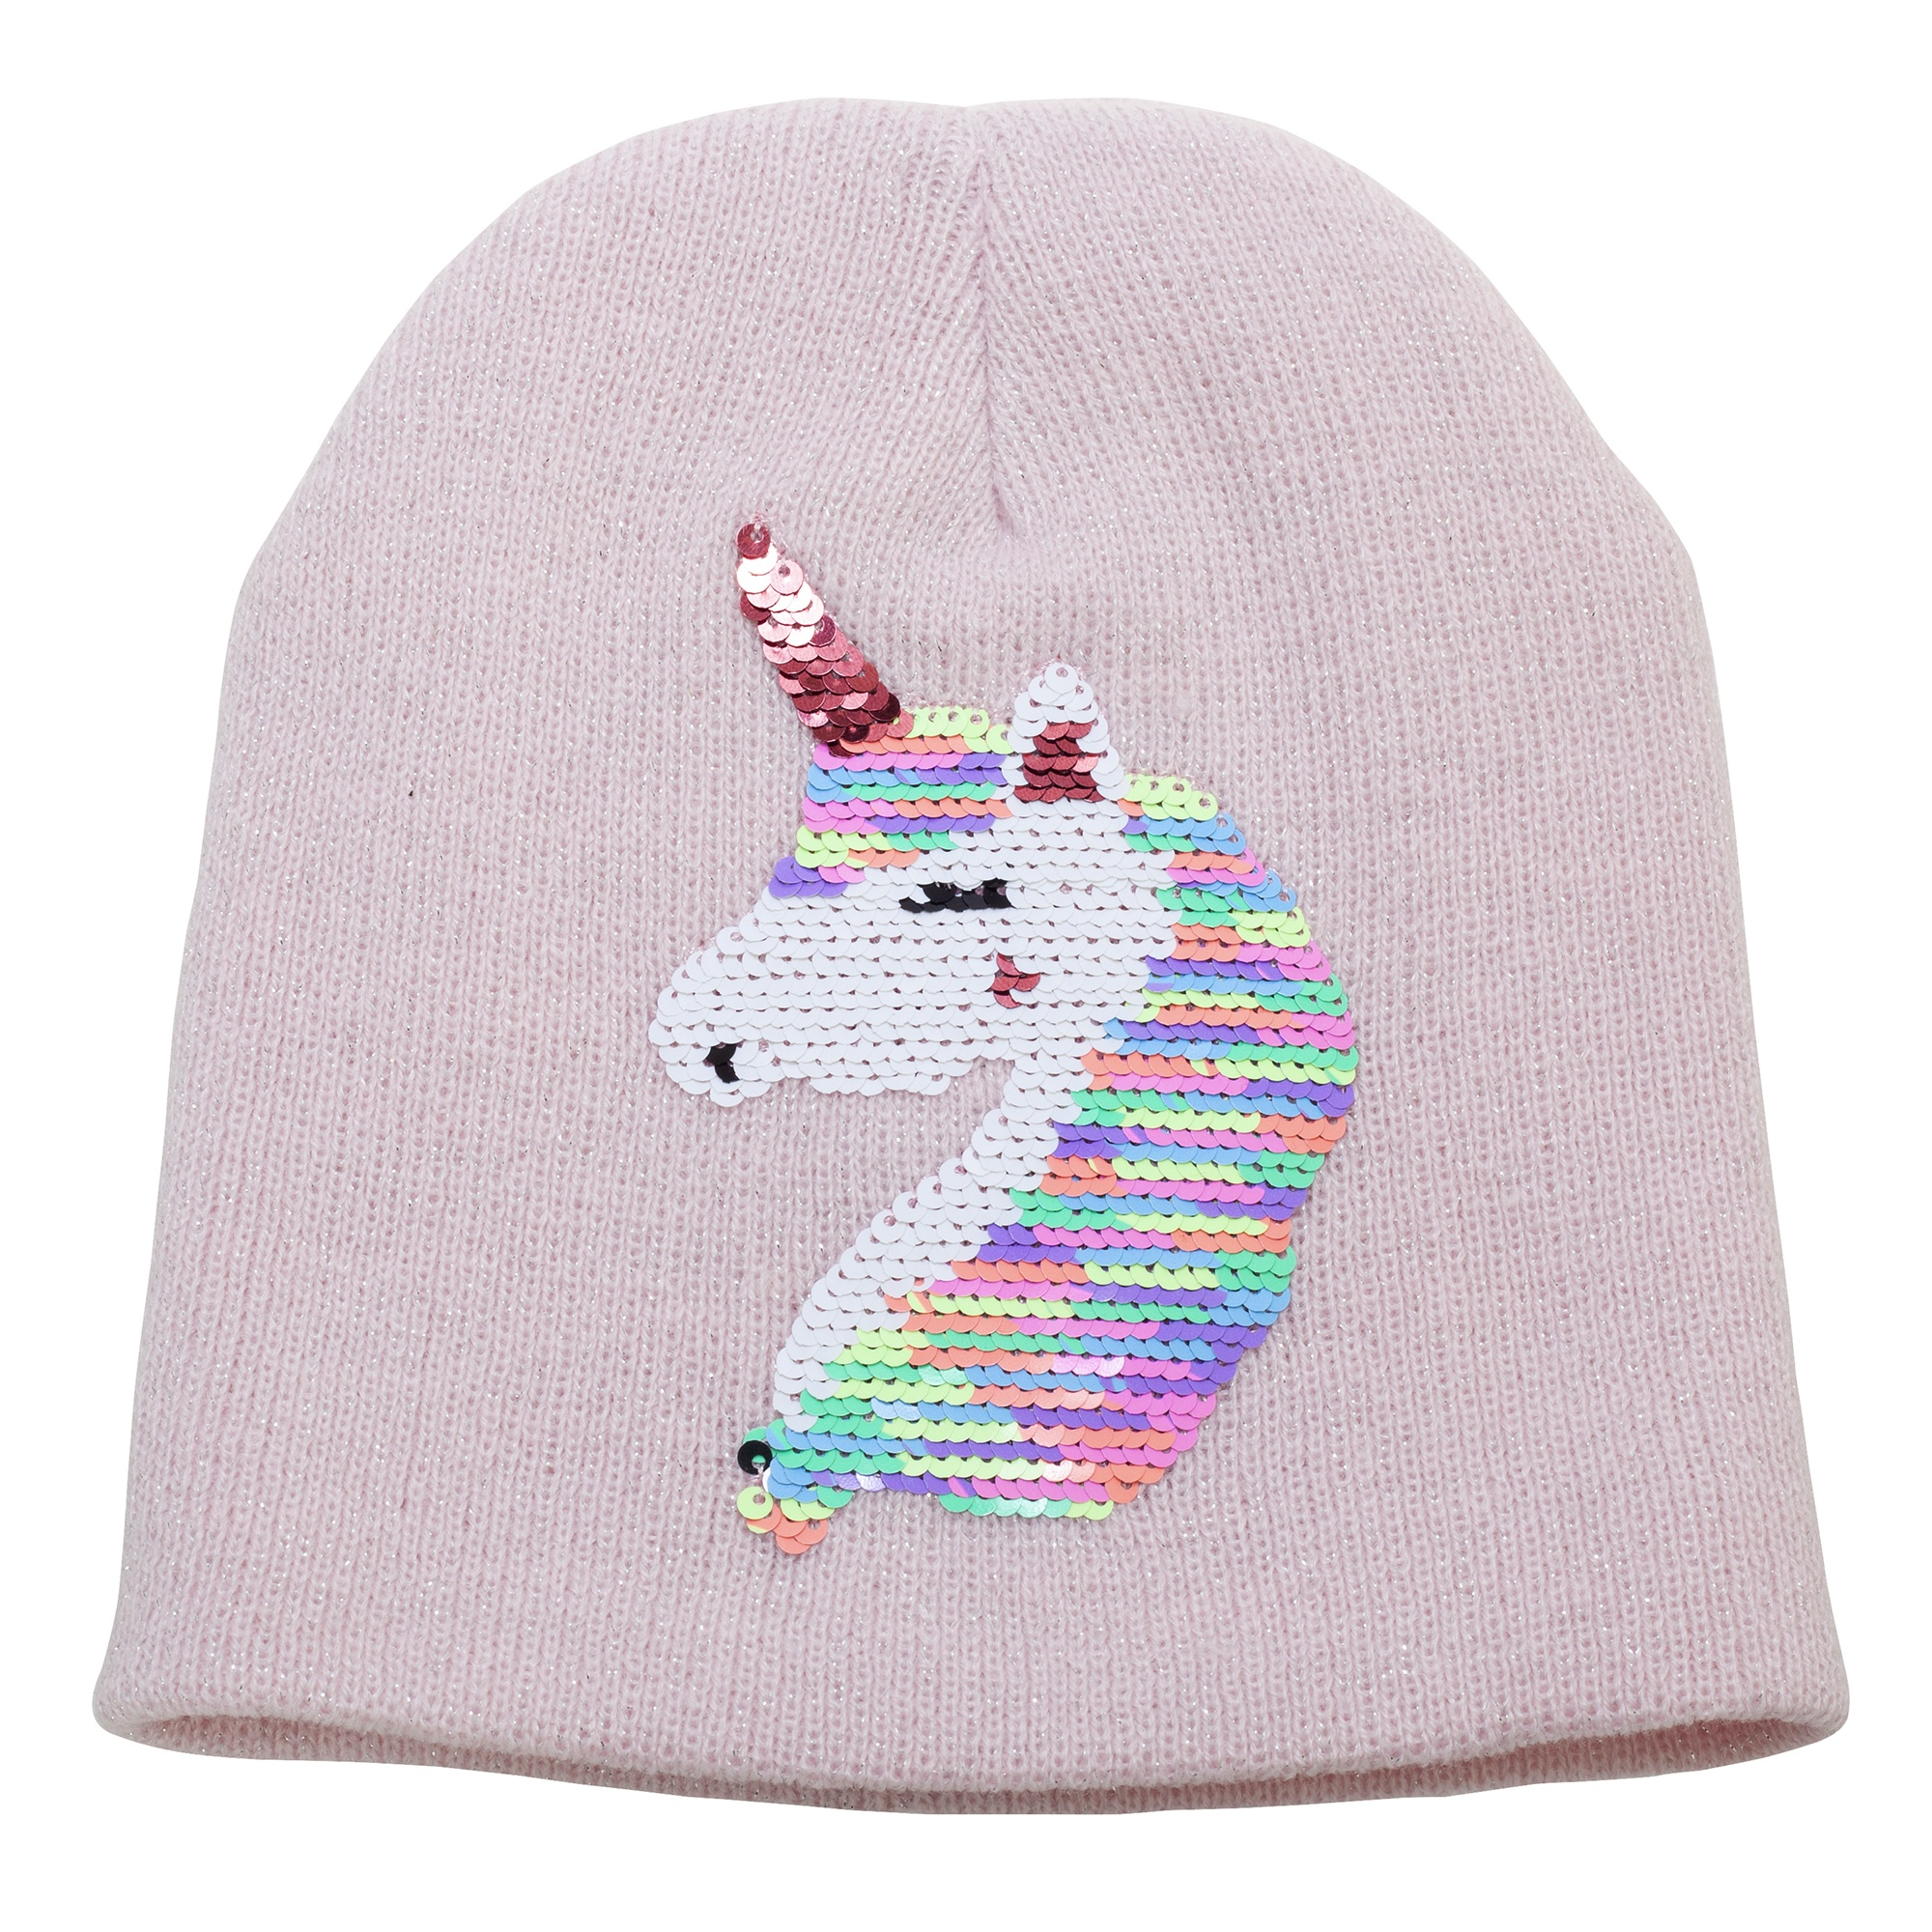 Childrens-Girls-Reversible-Unicorn-Sequins-Beanie-Hat-HA643 thumbnail 5